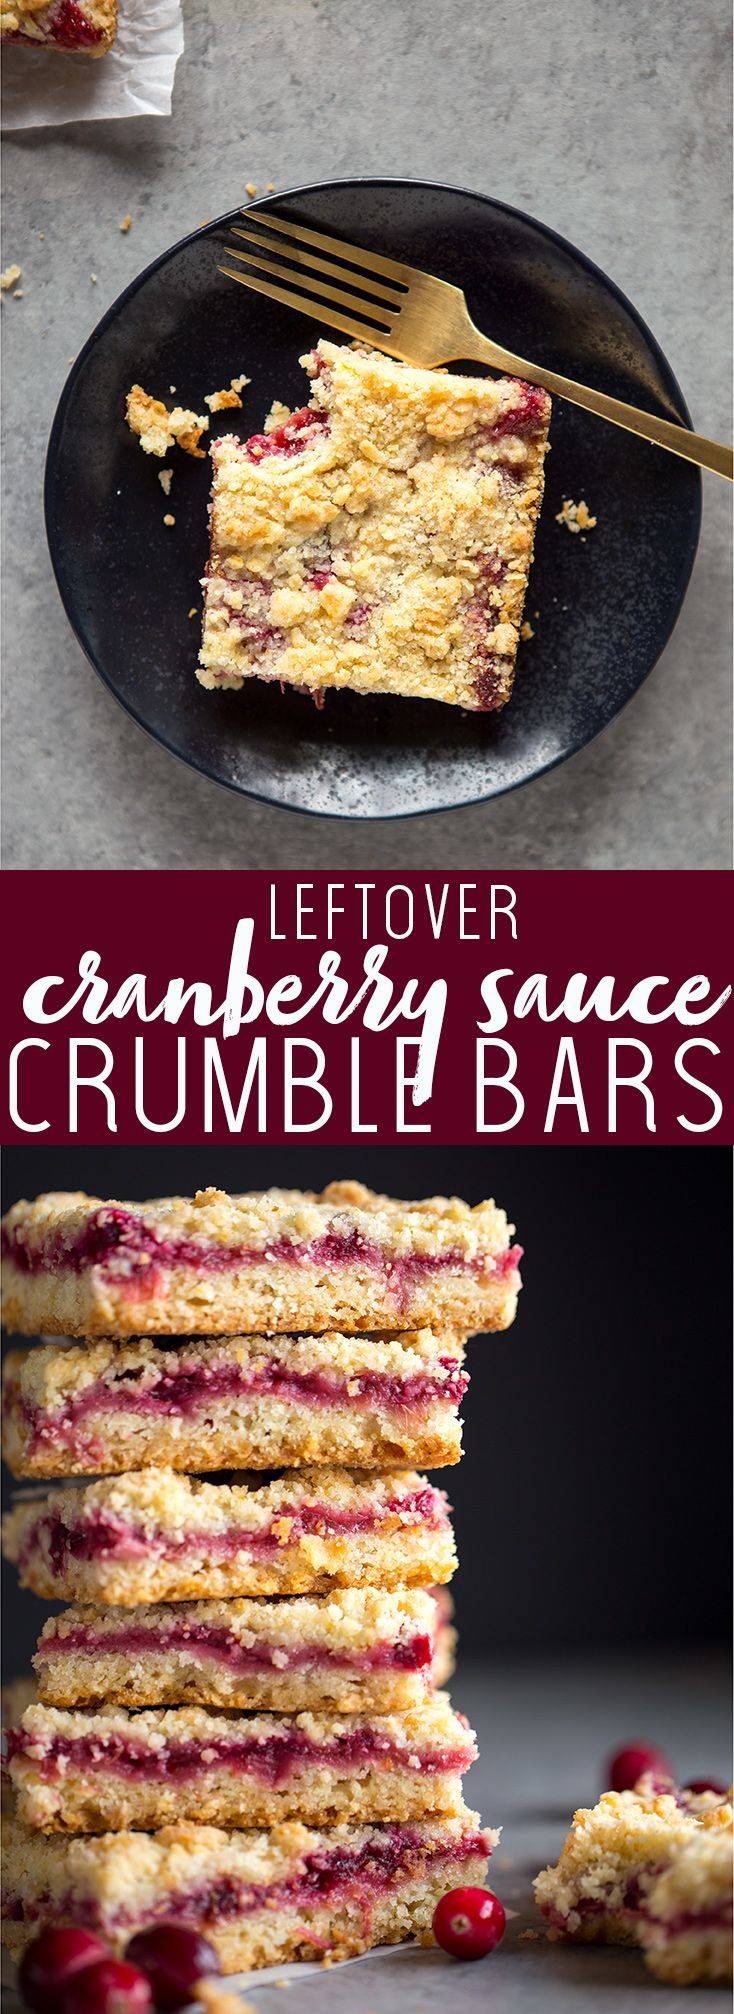 Leftover Cranberry Sauce Crumble Bars | Thanksgiving Leftover Ideas | Thanksgiving Leftover Recipes | Leftover Cranberry Sauce Recipe | Easy thanksgiving leftover recipes | Thanksgiving Left Over Recipes | Day after Thanksgiving Breakfast idea | what to make with thanksgiving leftovers